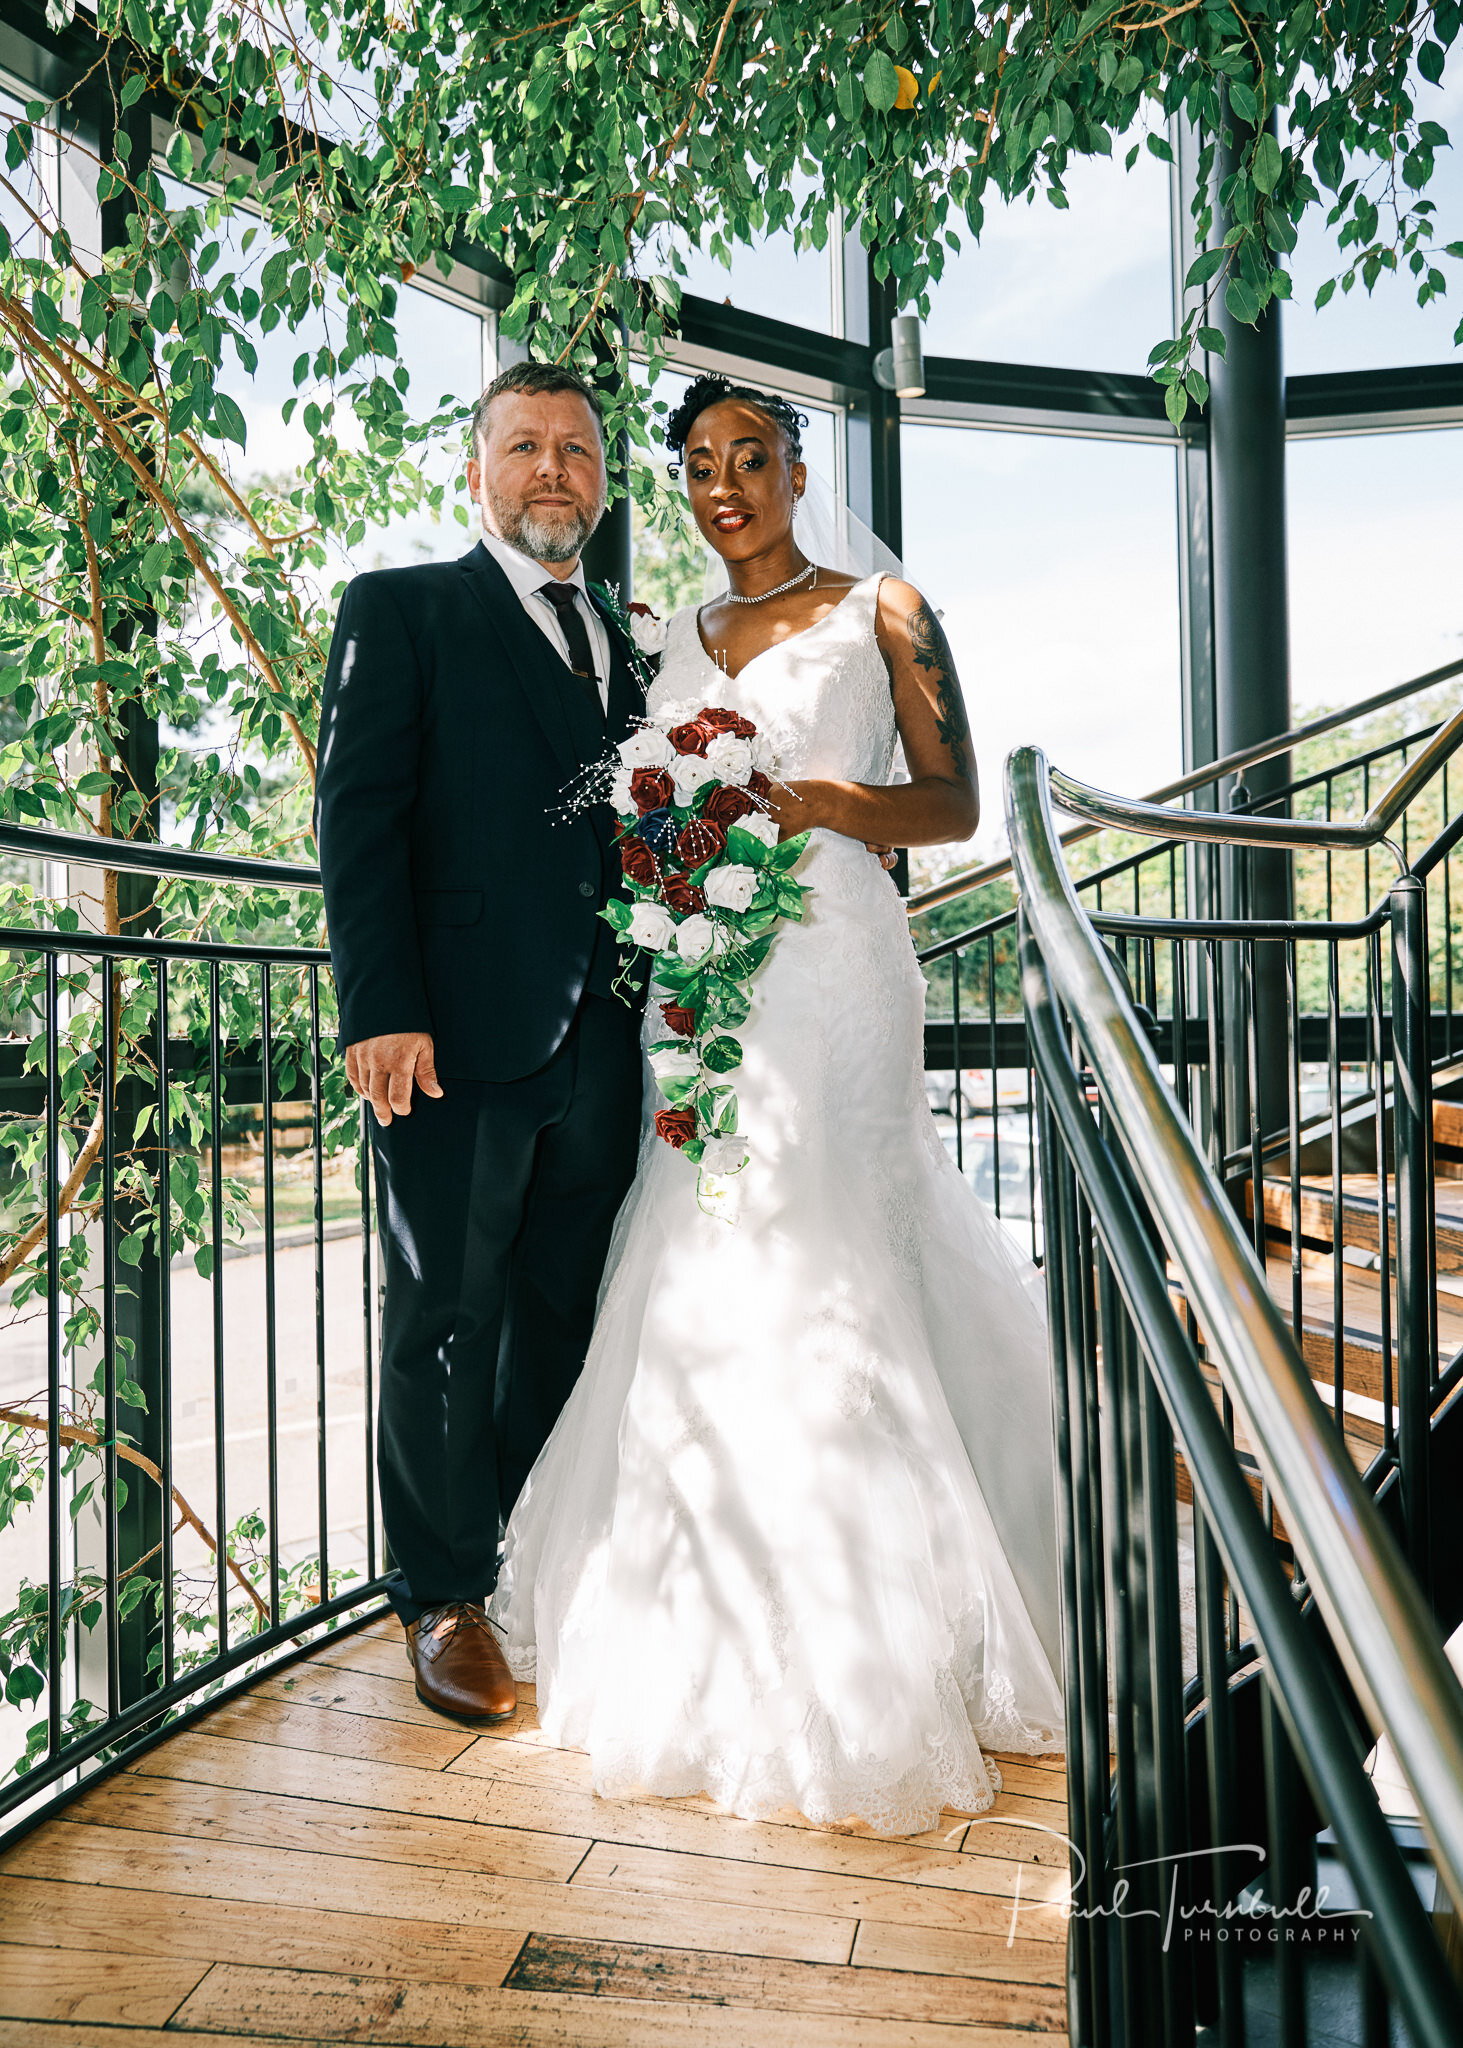 Bride and groom on the staircase at Lazaat Hotel. Bride and groom enjoying the gardens of Lazaat Hotel. Wedding photographer Hull